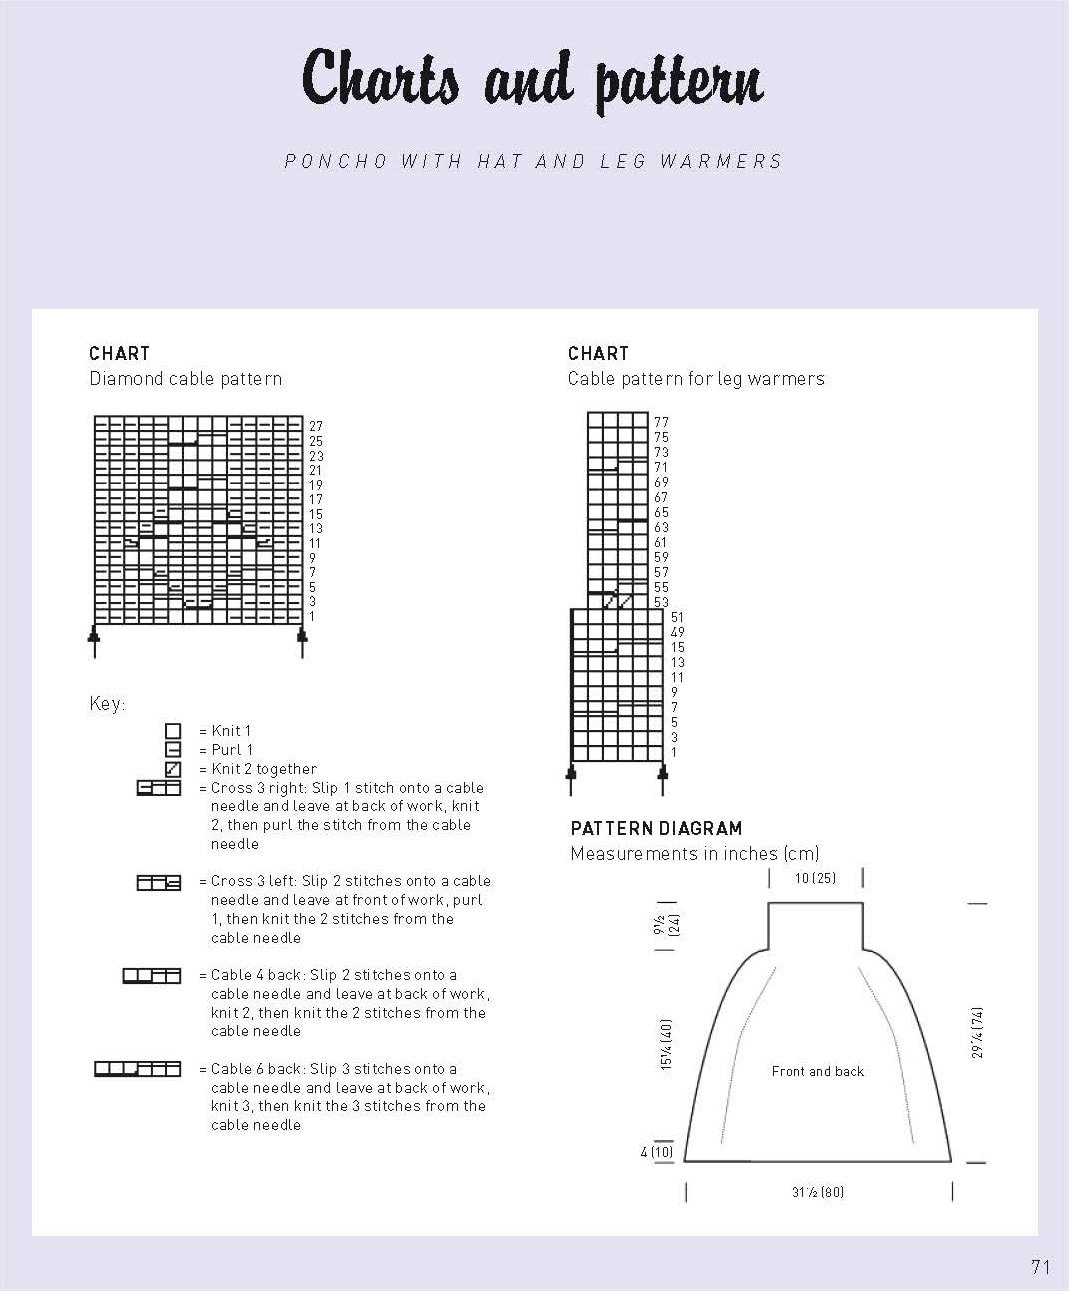 Chart and Diagram for Winter Warmers Poncho with Hat and Leg Warmers Excerpt Approved by DK Canada